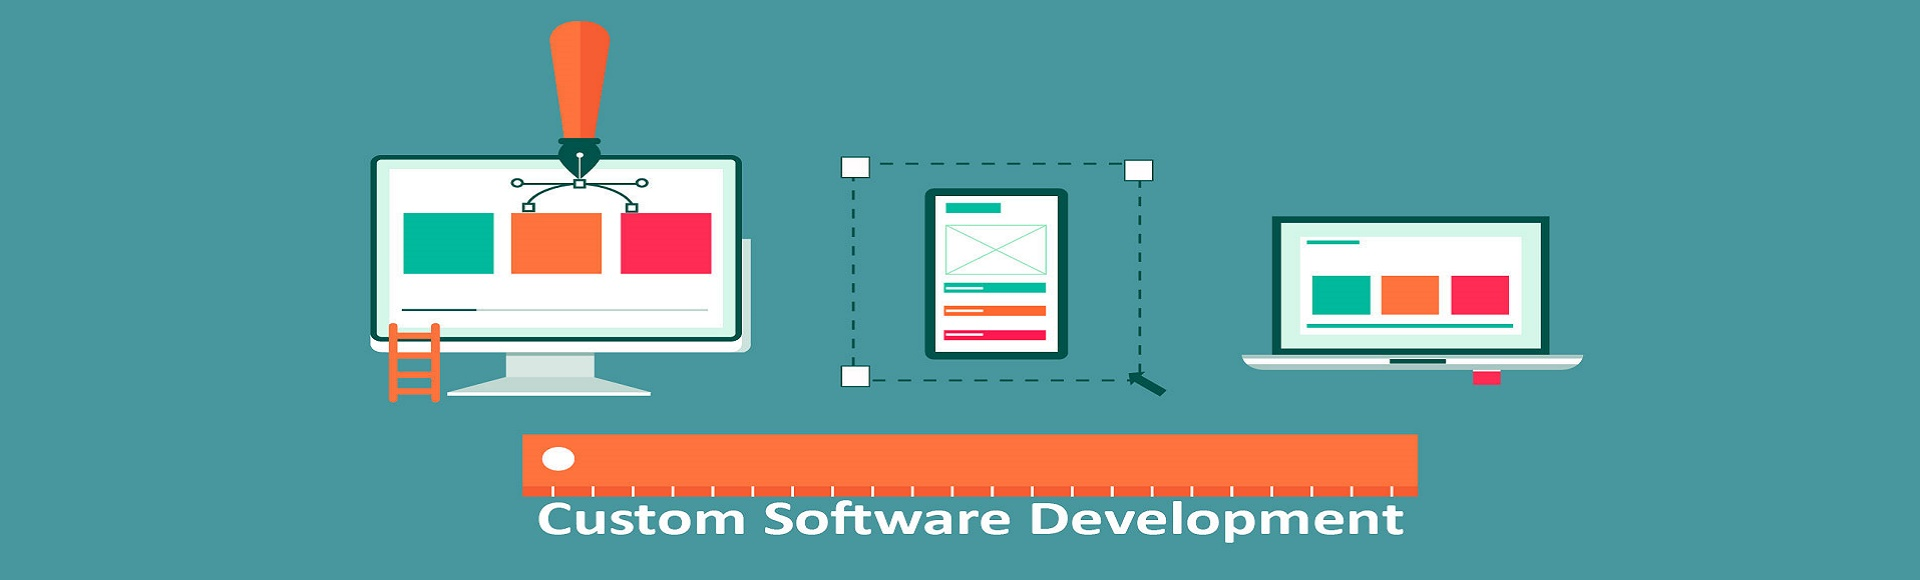 custom software development in india, bareilly